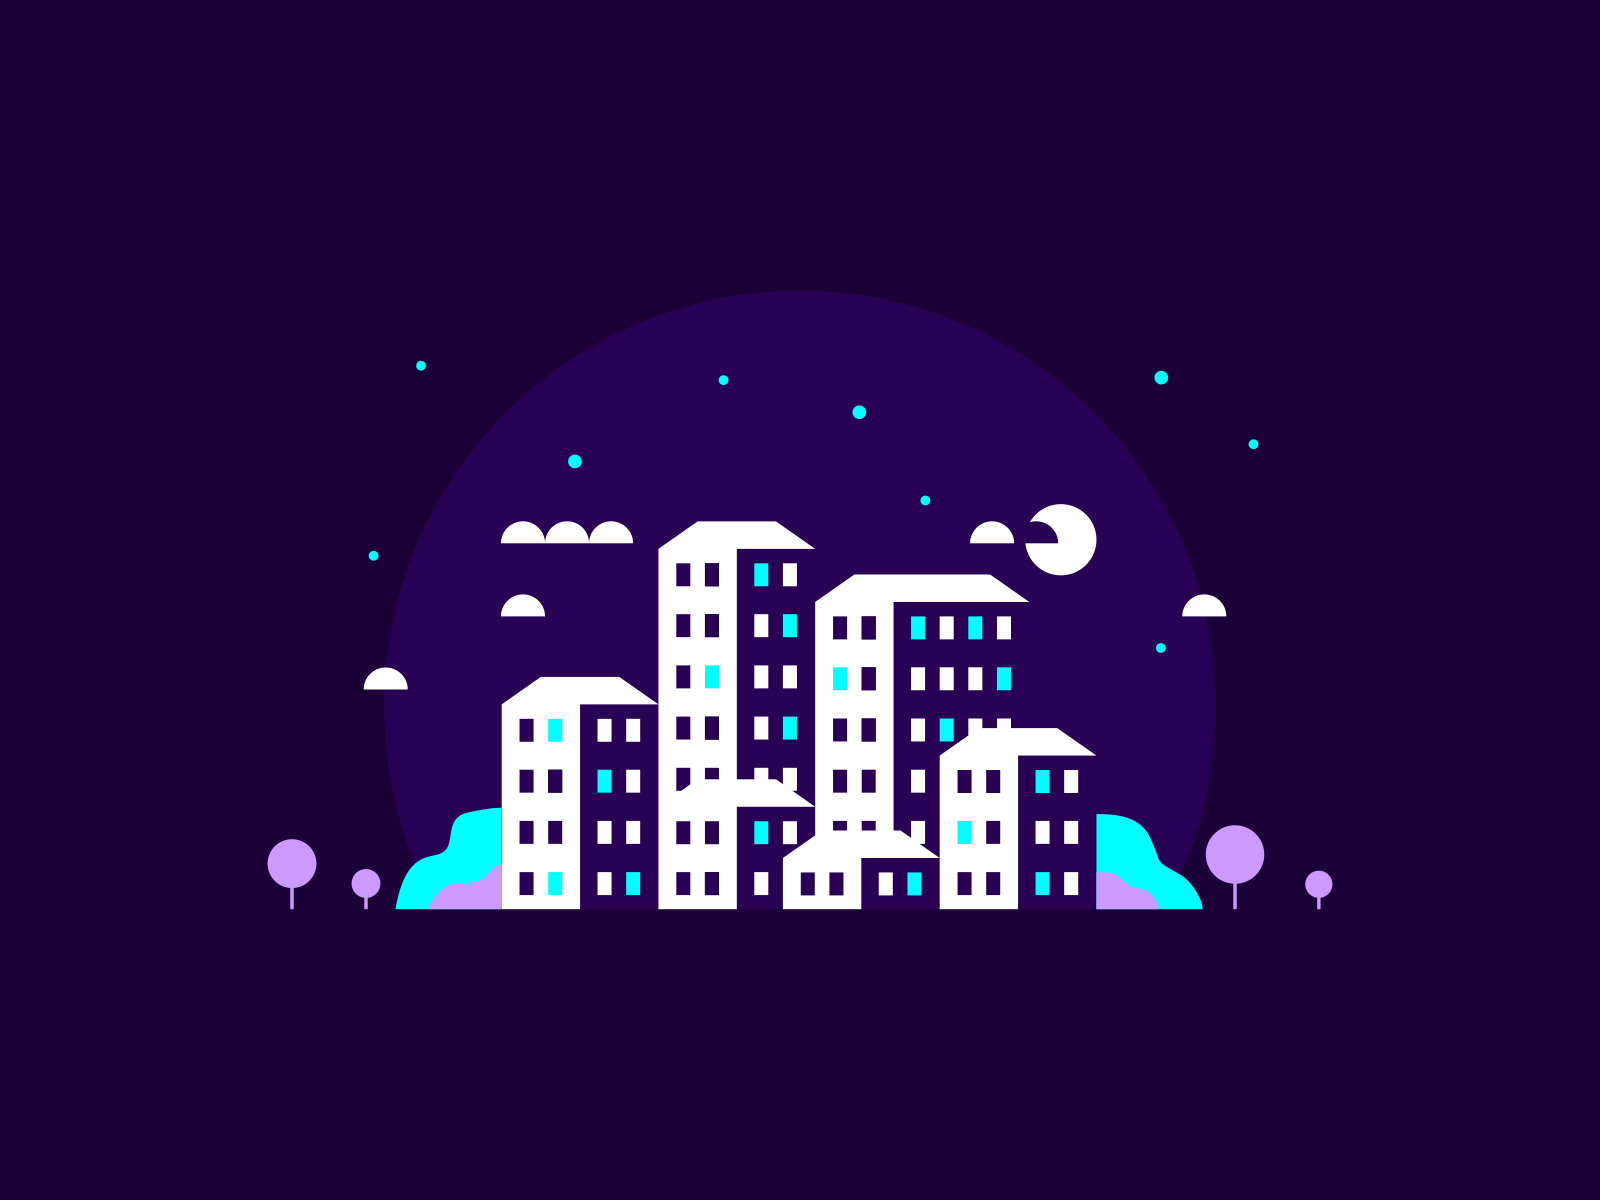 Purple teal city